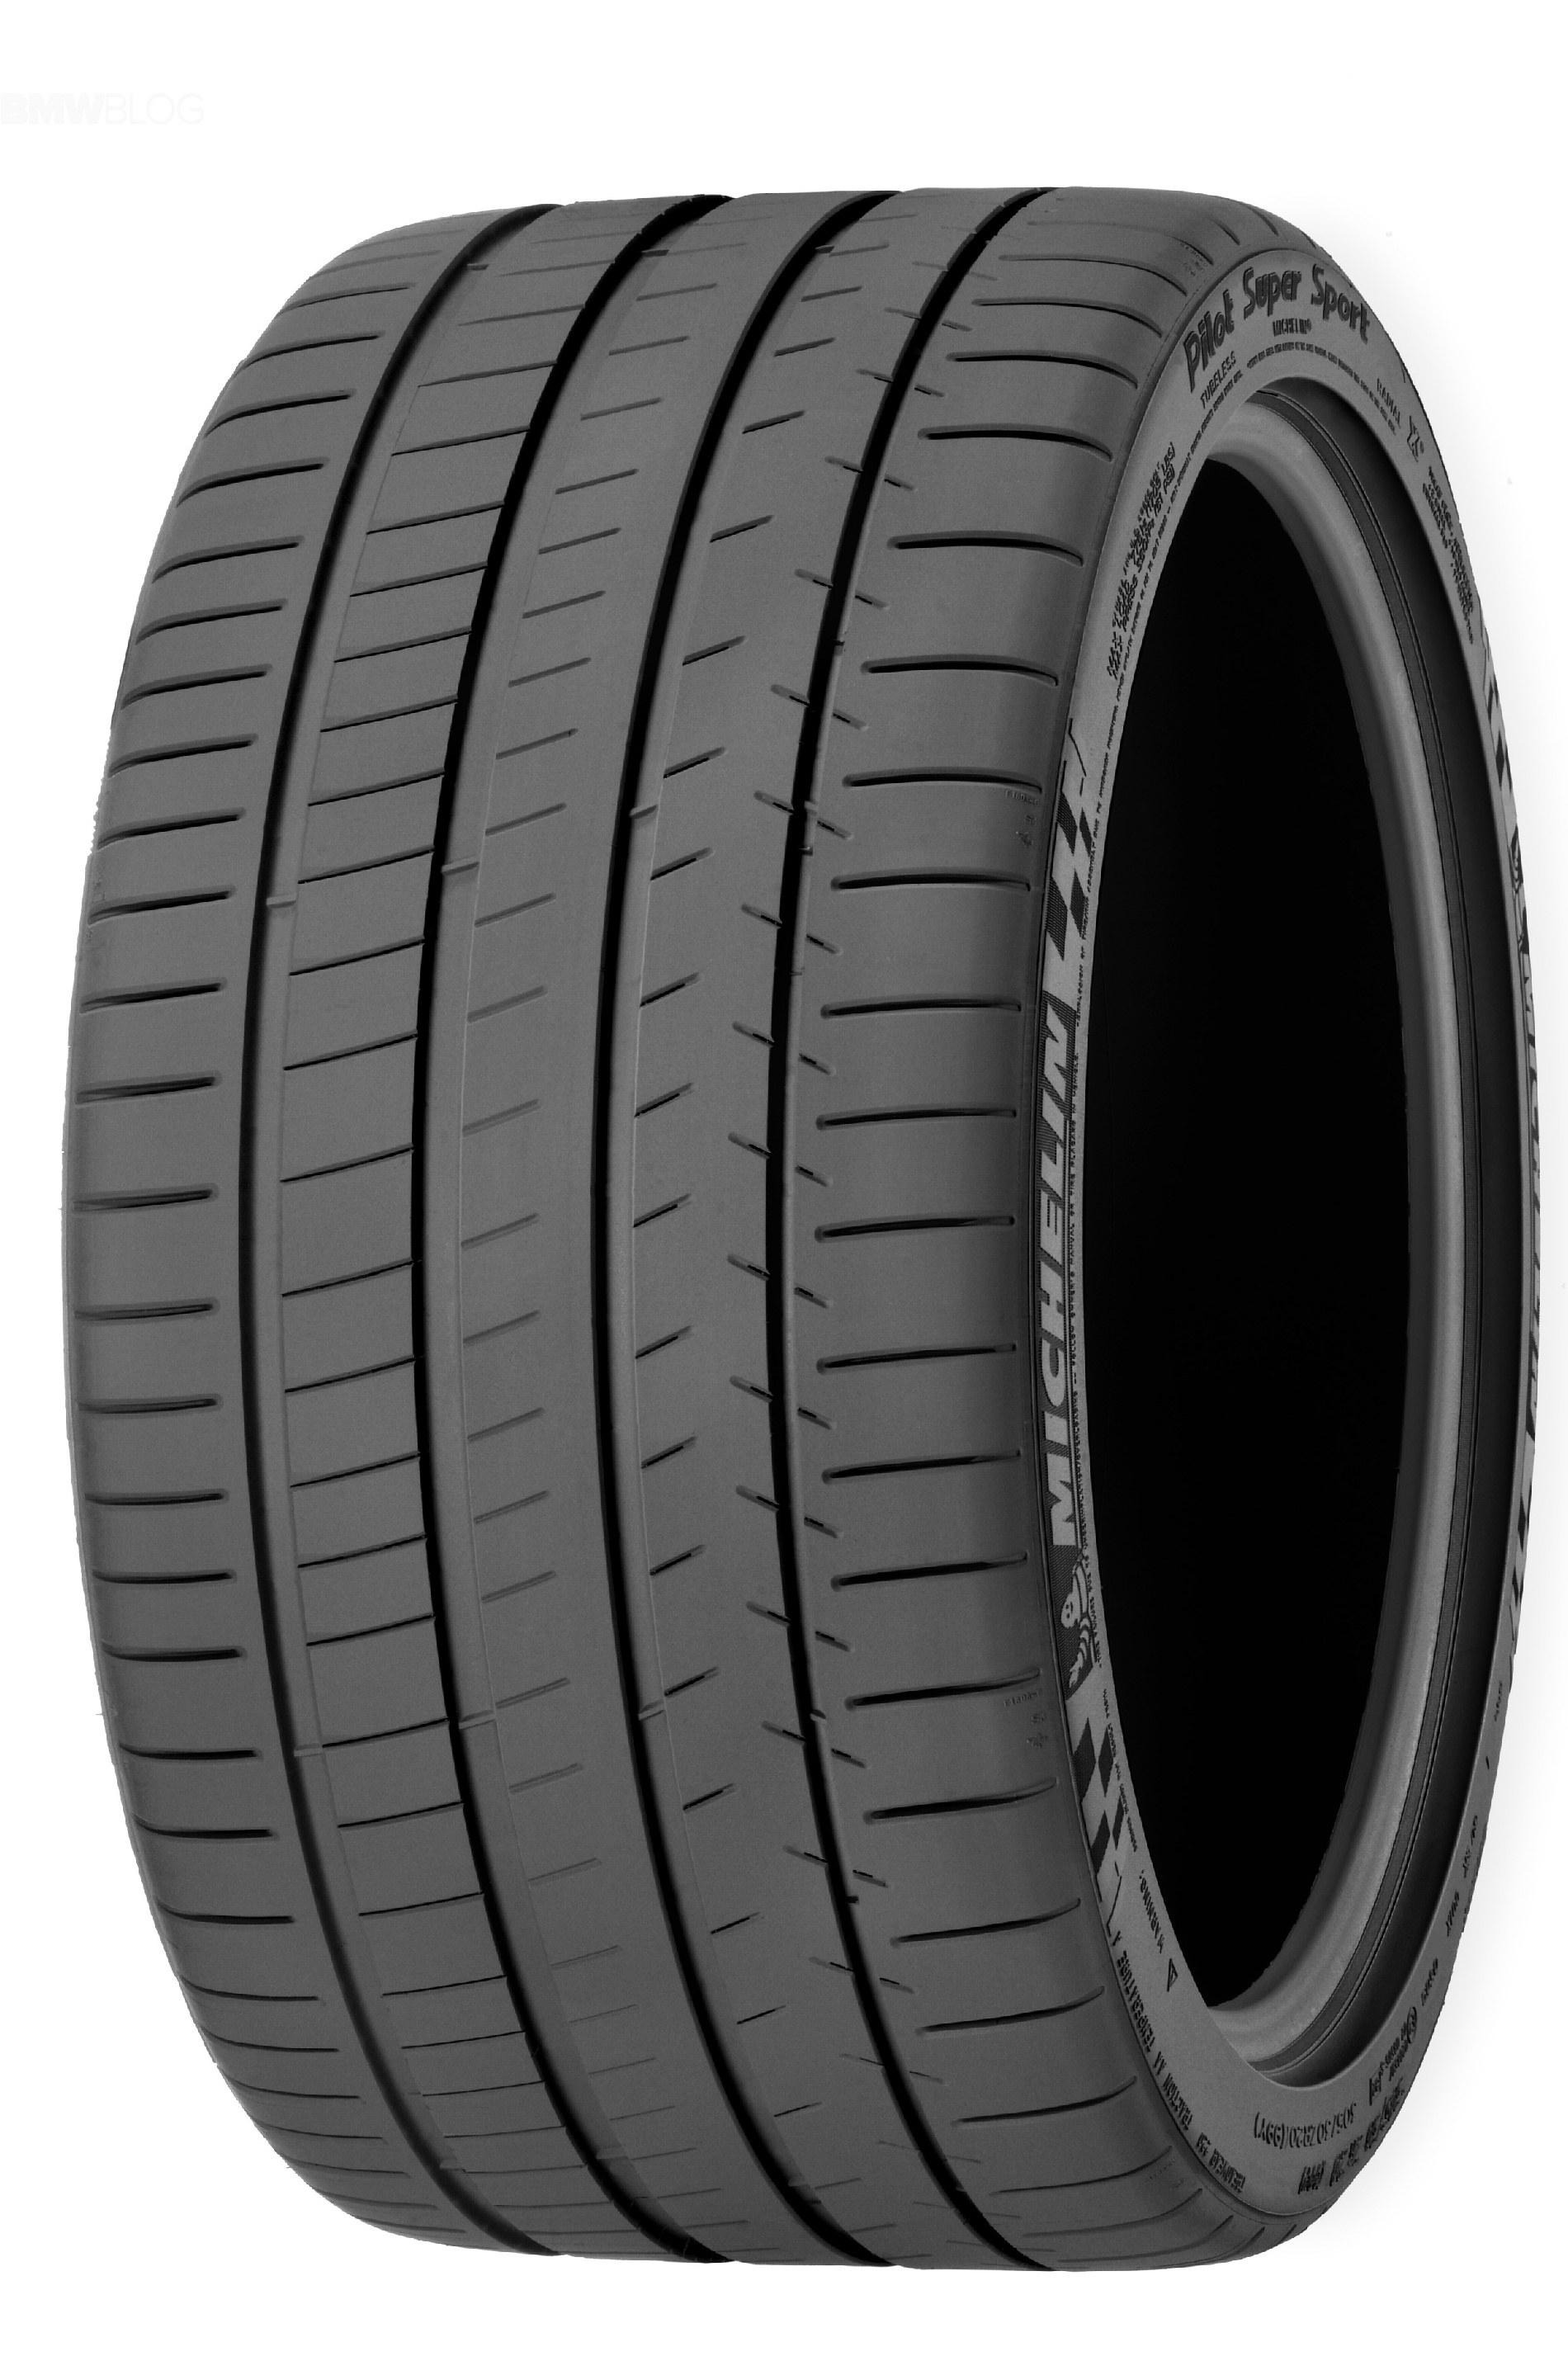 Летняя шина Michelin Pilot Super Sport 275/40 R19 105Y